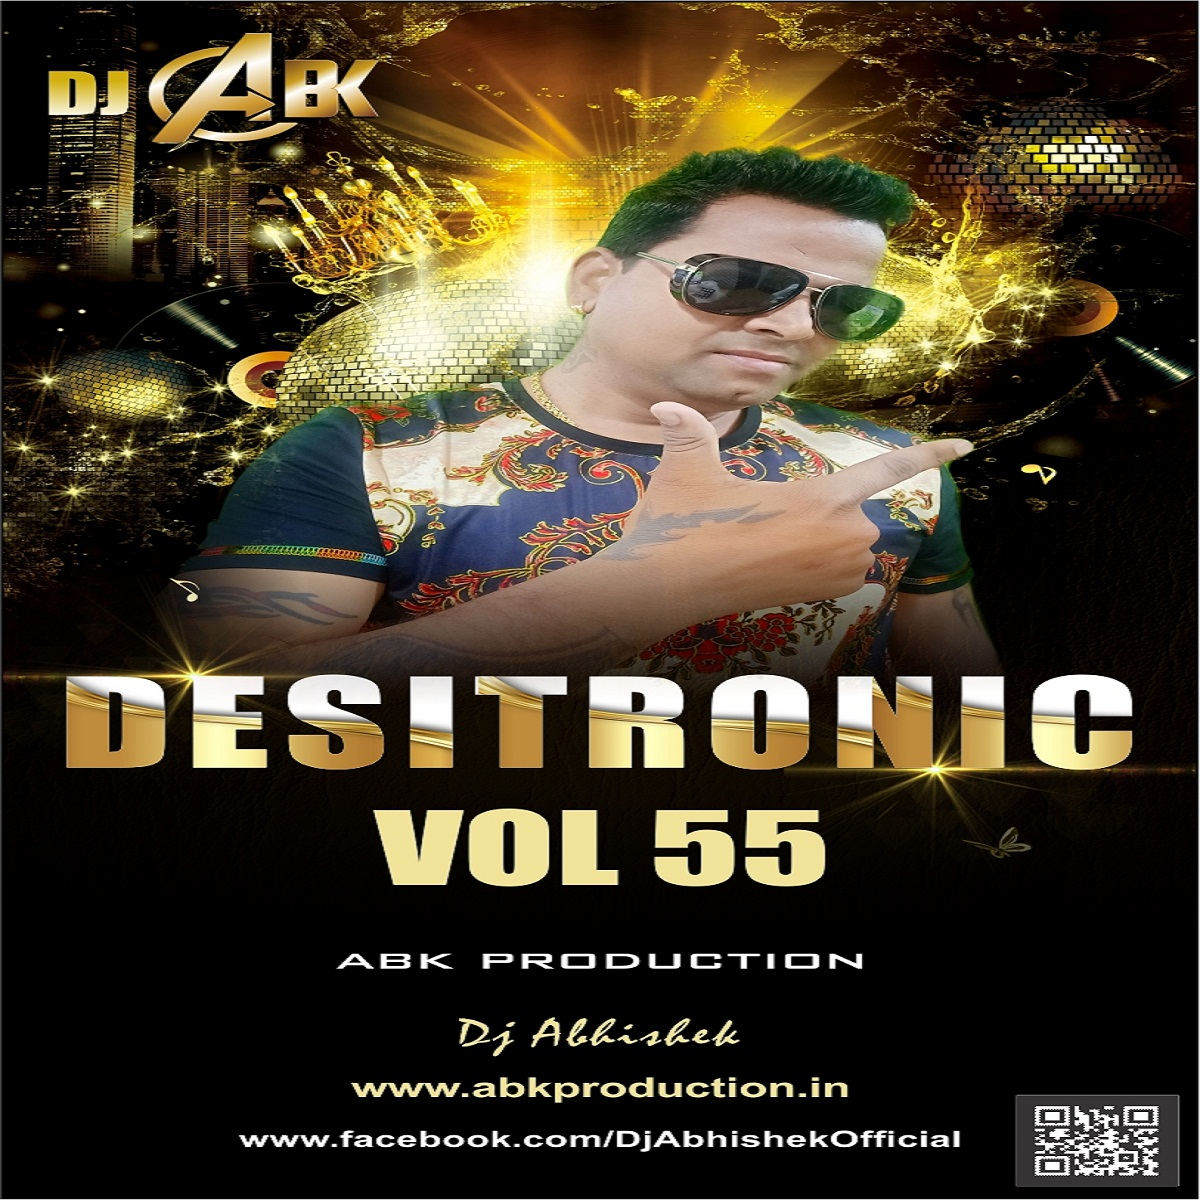 Desitronic Vol.55 - ABK Production - DJ Abhishek Kanpur